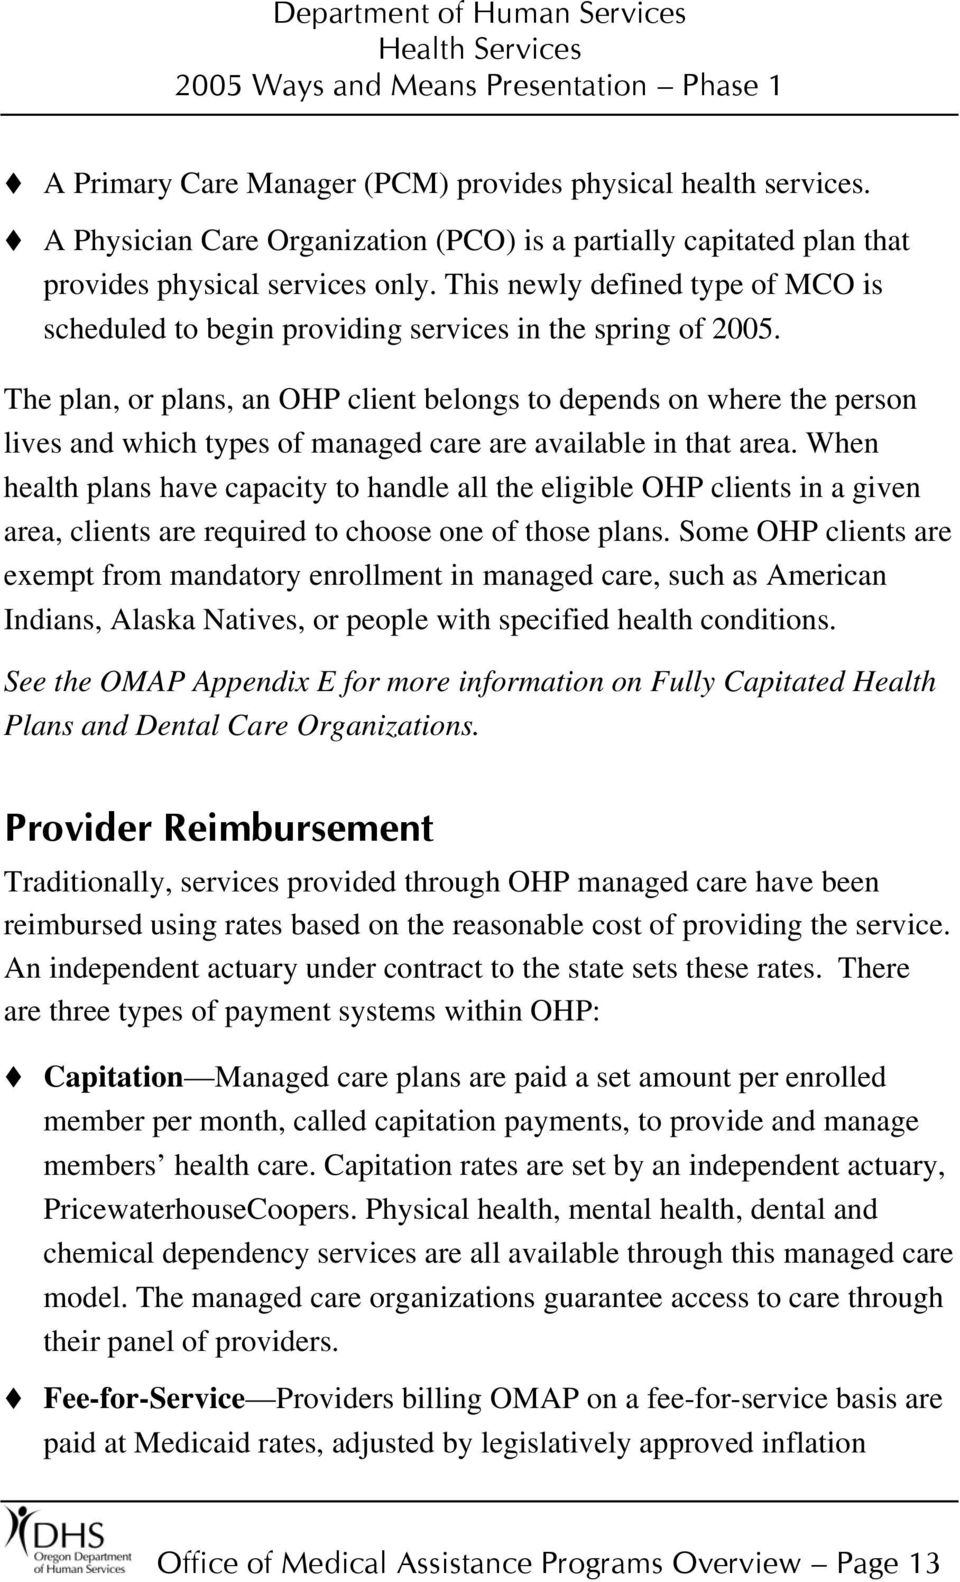 The plan, or plans, an OHP client belongs to depends on where the person lives and which types of managed care are available in that area.